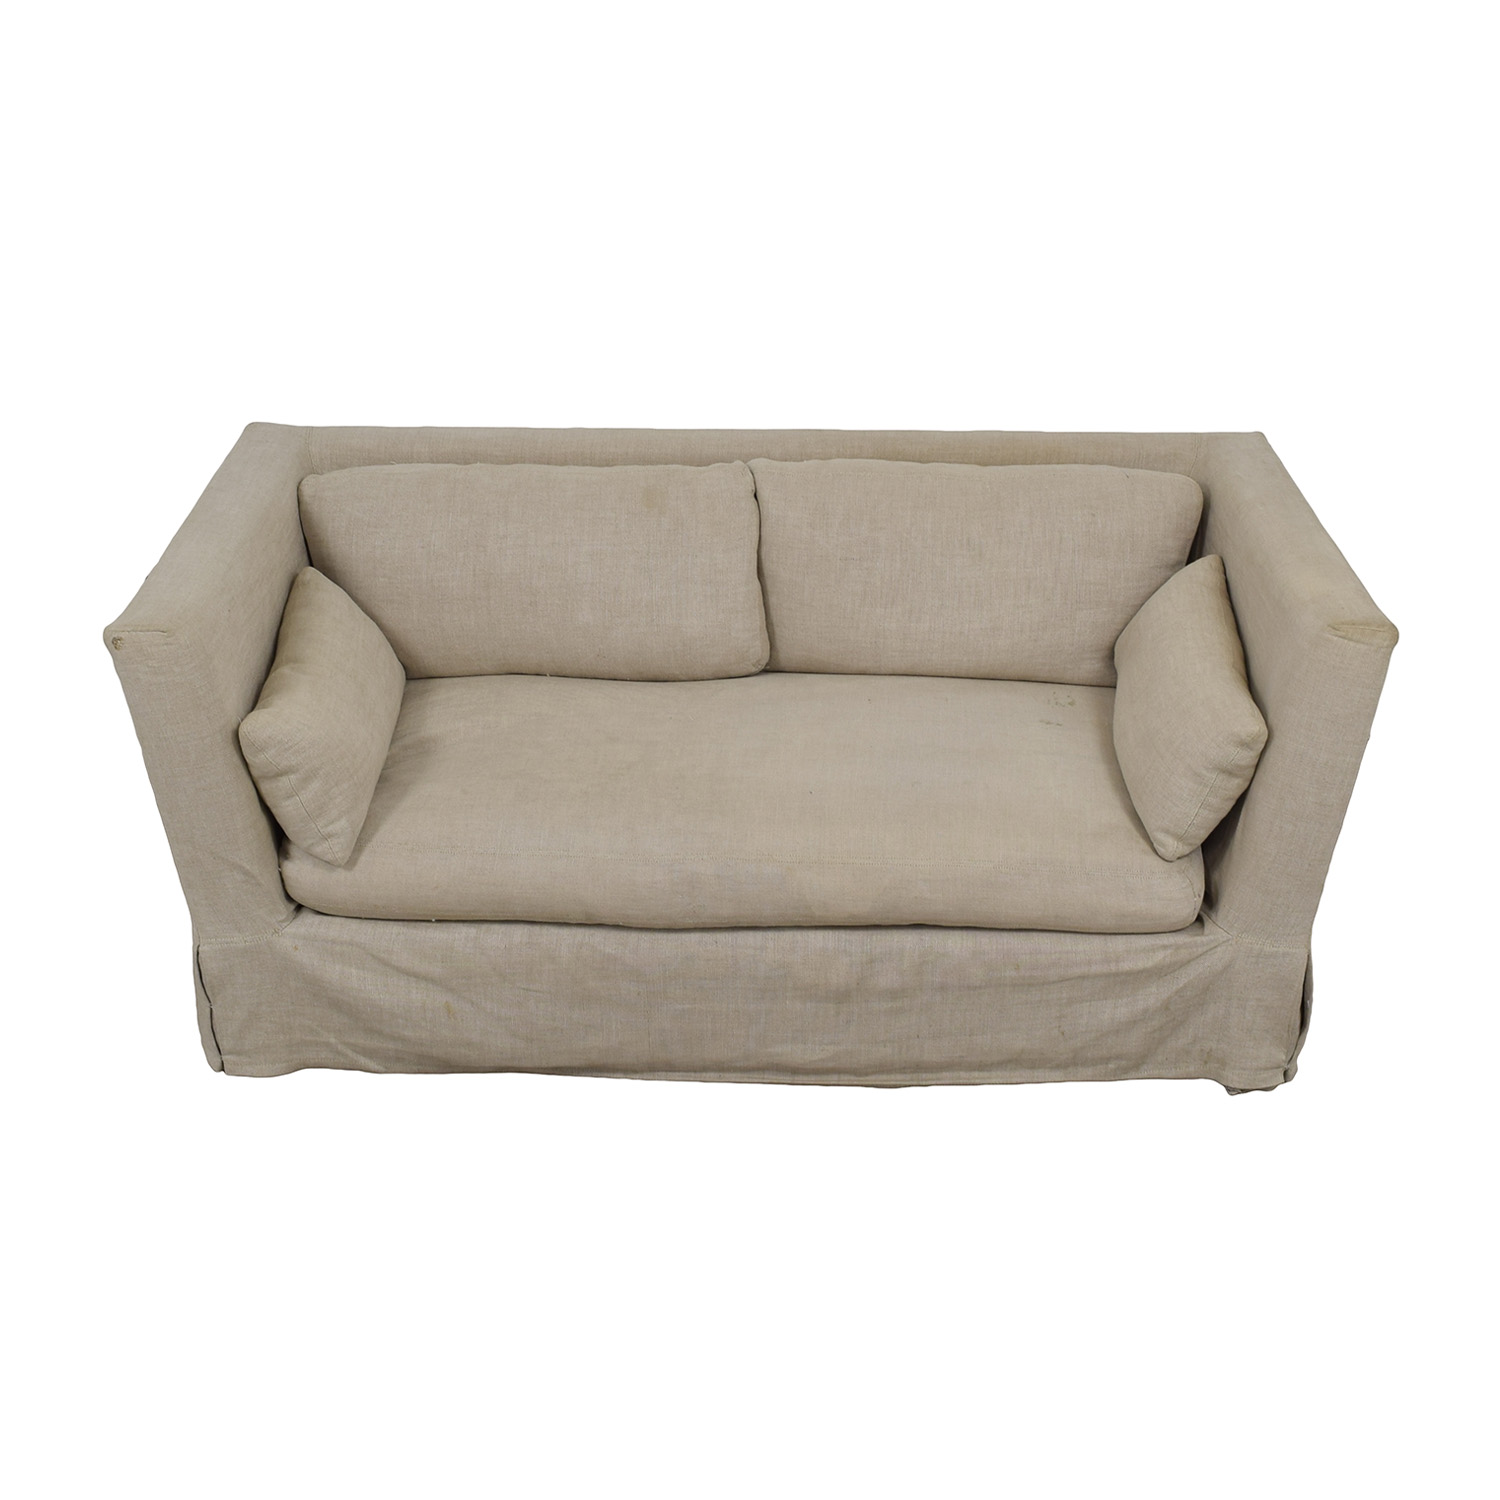 shop Restoration Hardware Grey Single Cushion Slipcover Sofa Restoration Hardware Sofas